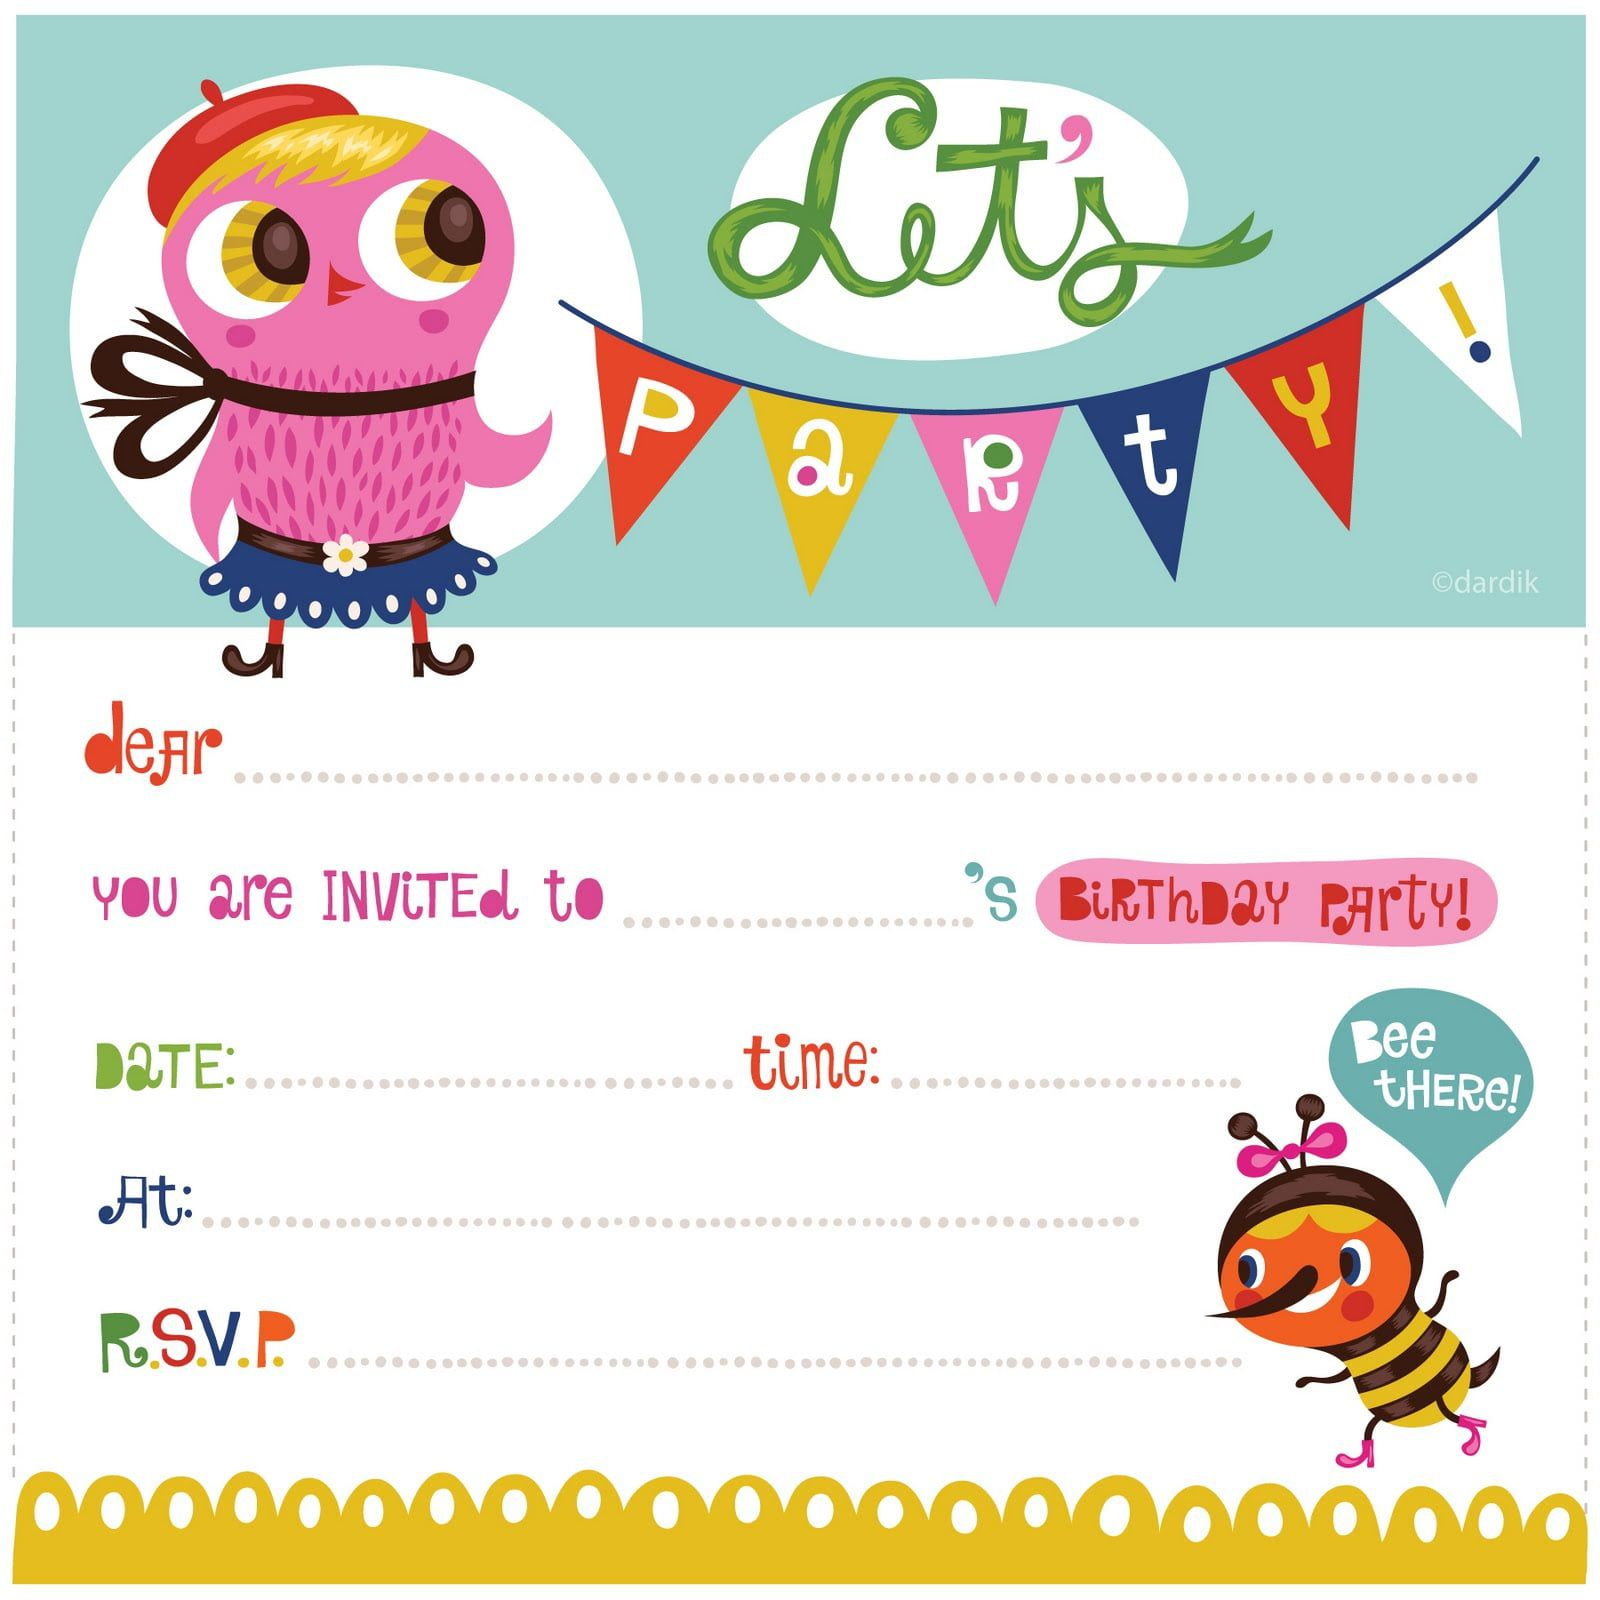 004 Best Free Birthday Party Invitation Template For Word Image Full